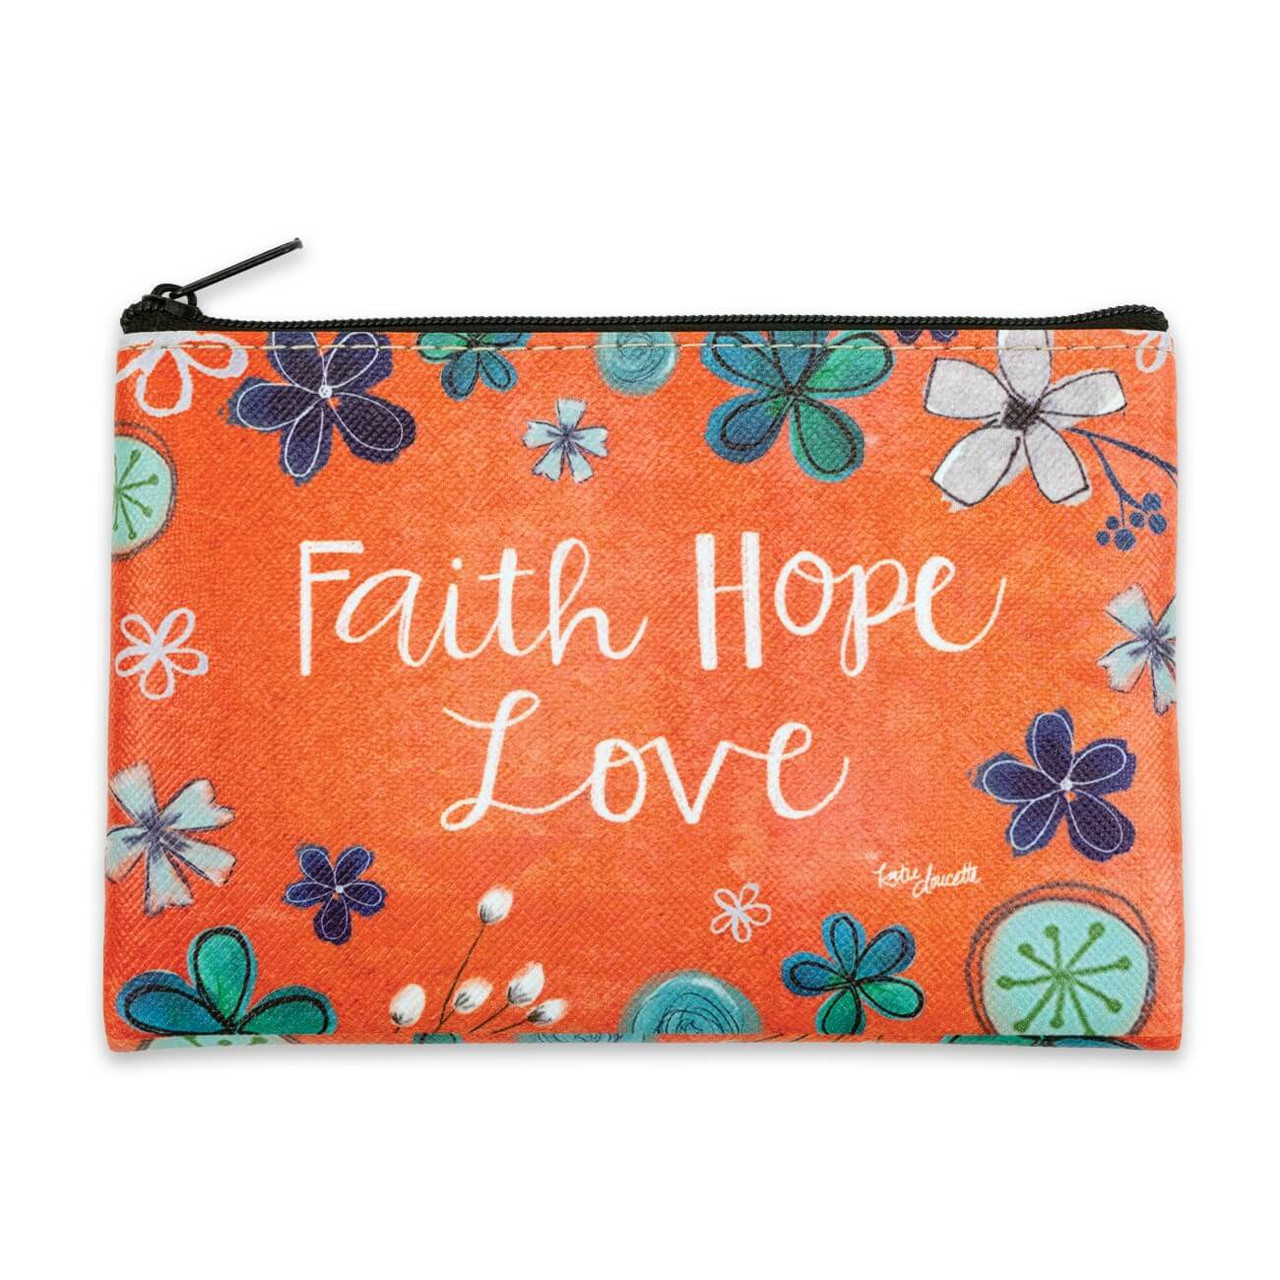 """The perfect small, fun, and functional accessory! This bag features cute floral artwork and sweet sentiments on coated canvas material. Featuring artwork by Kate Doucette.  Faith Hope Love sentiment 6""""(W) x 4 1/2(H) Coated canvas exterior Lined interior"""